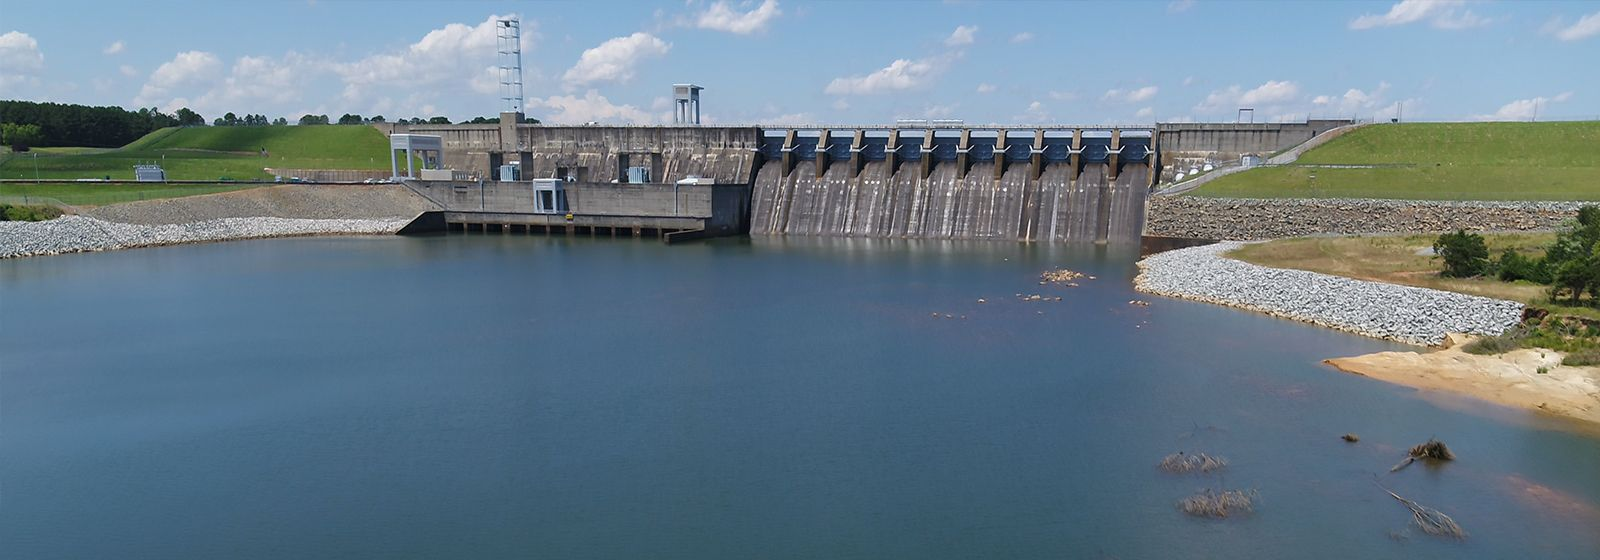 North Carolina's largest hydro plant gets a makeover